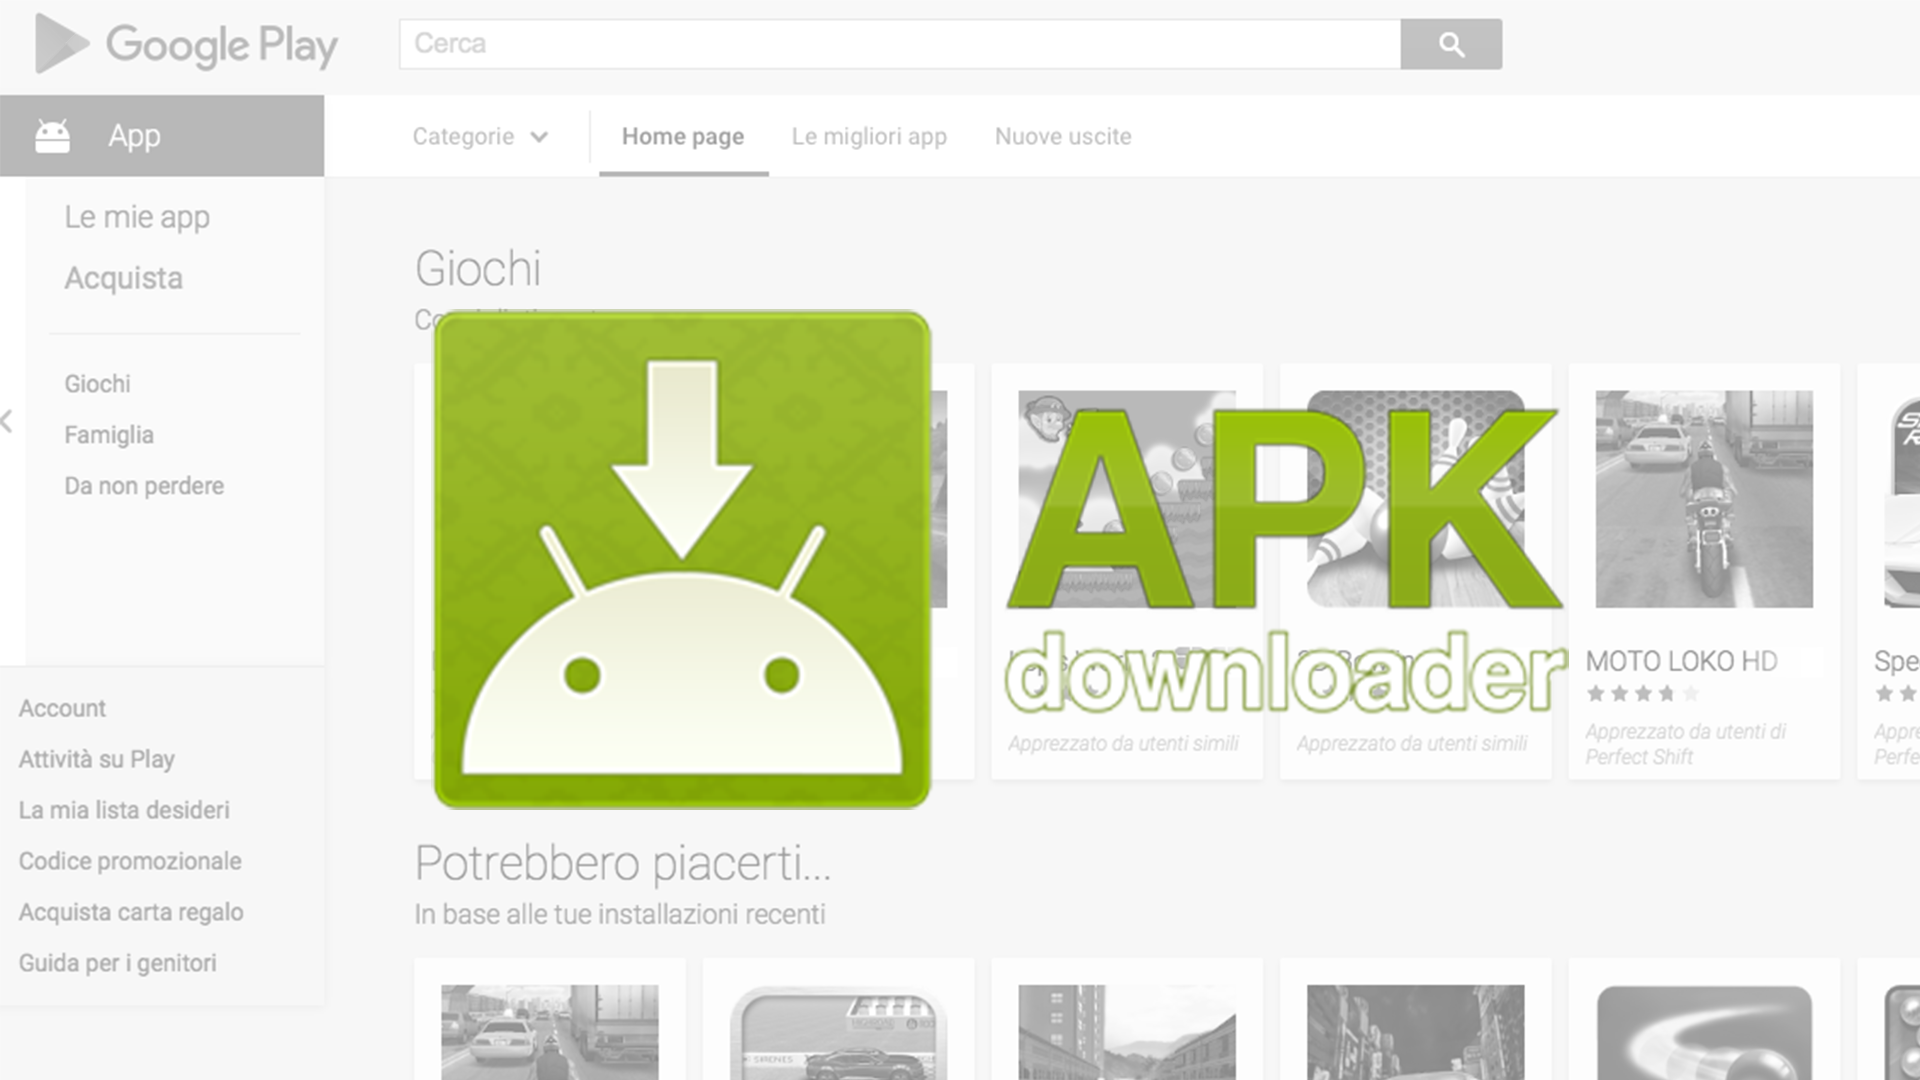 how to download google play apk file